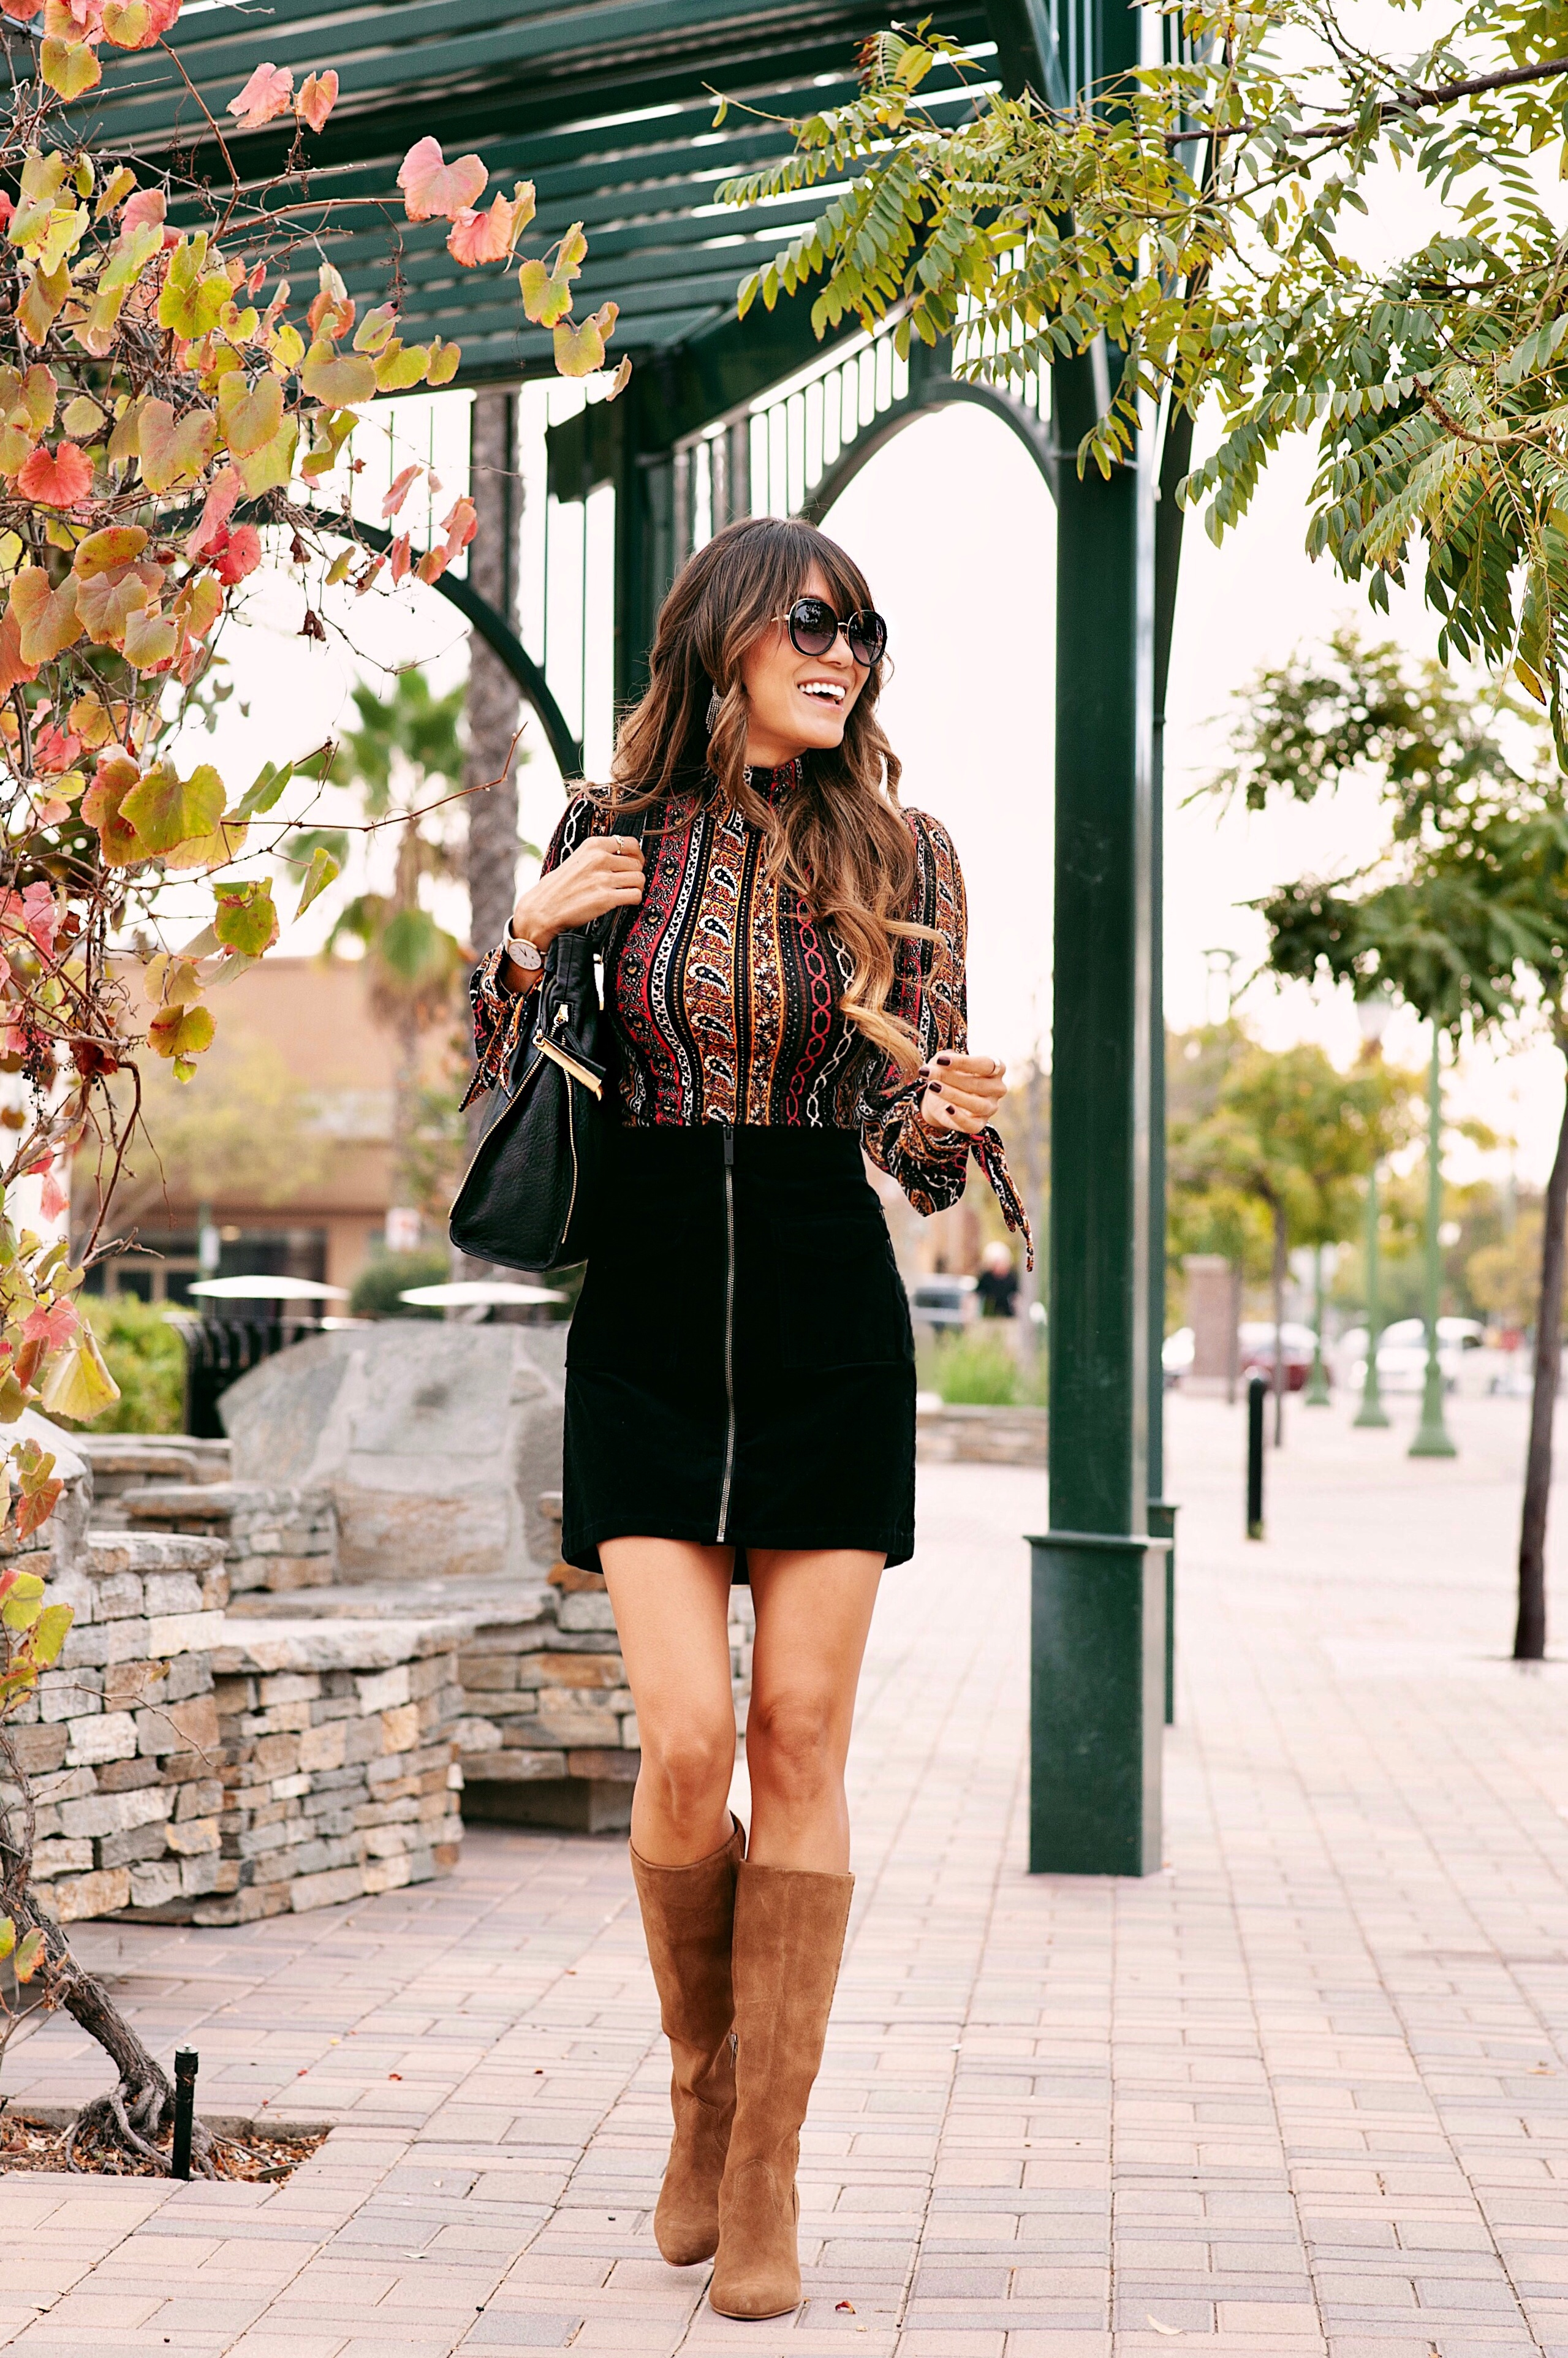 b283ce2569a Vince Camuto Boots And Bag!! - A personal blog by Jen Adams